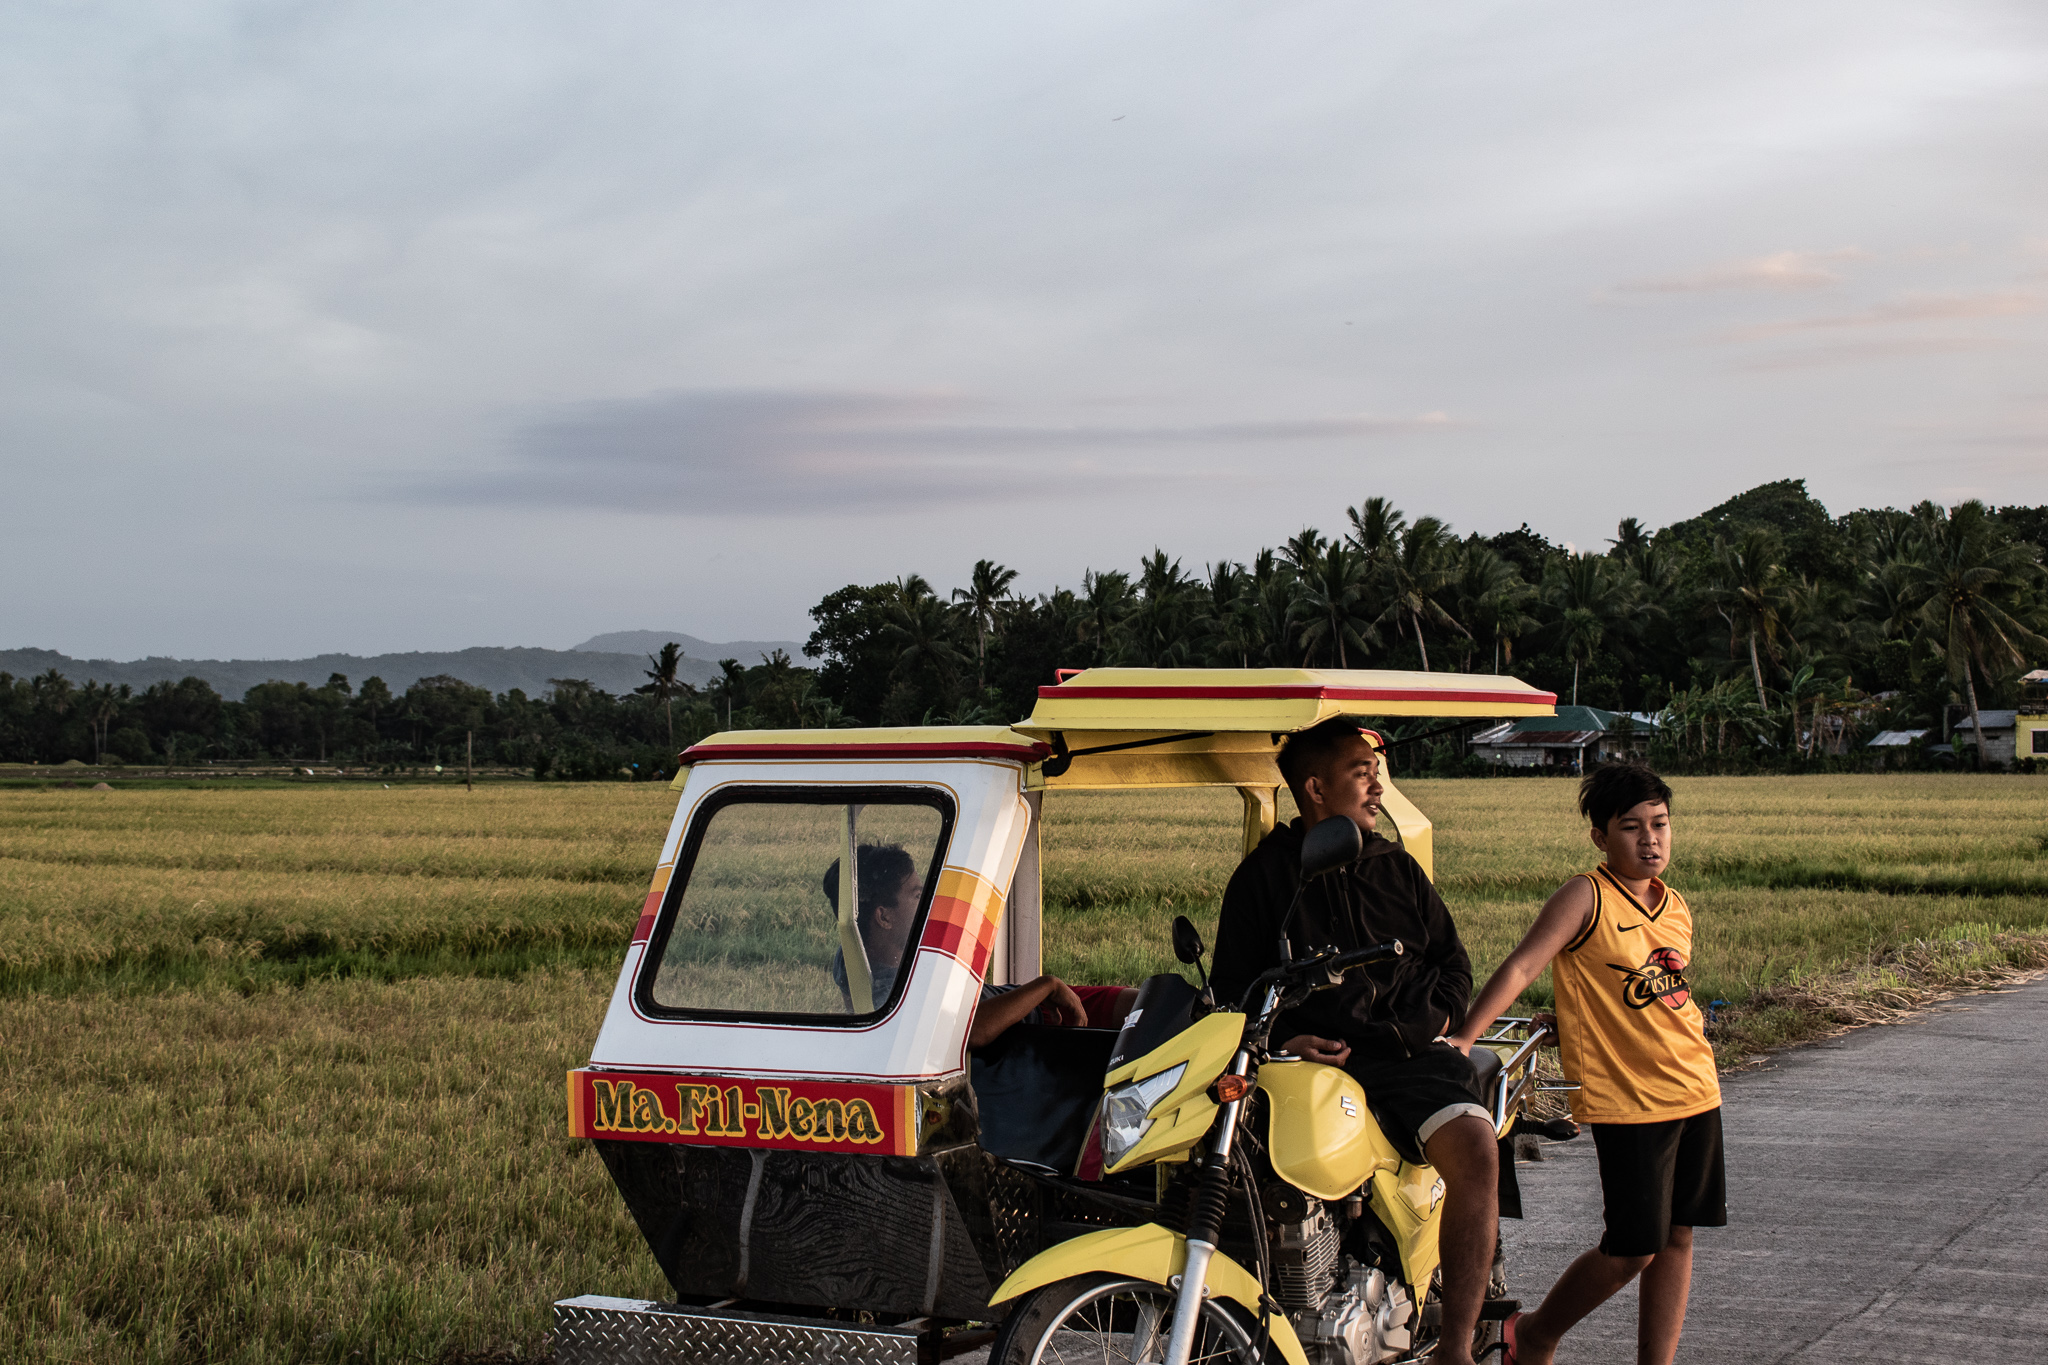 My home town of Ibajay, Philippines, featuring my grandmother's tricycle and my cousins.